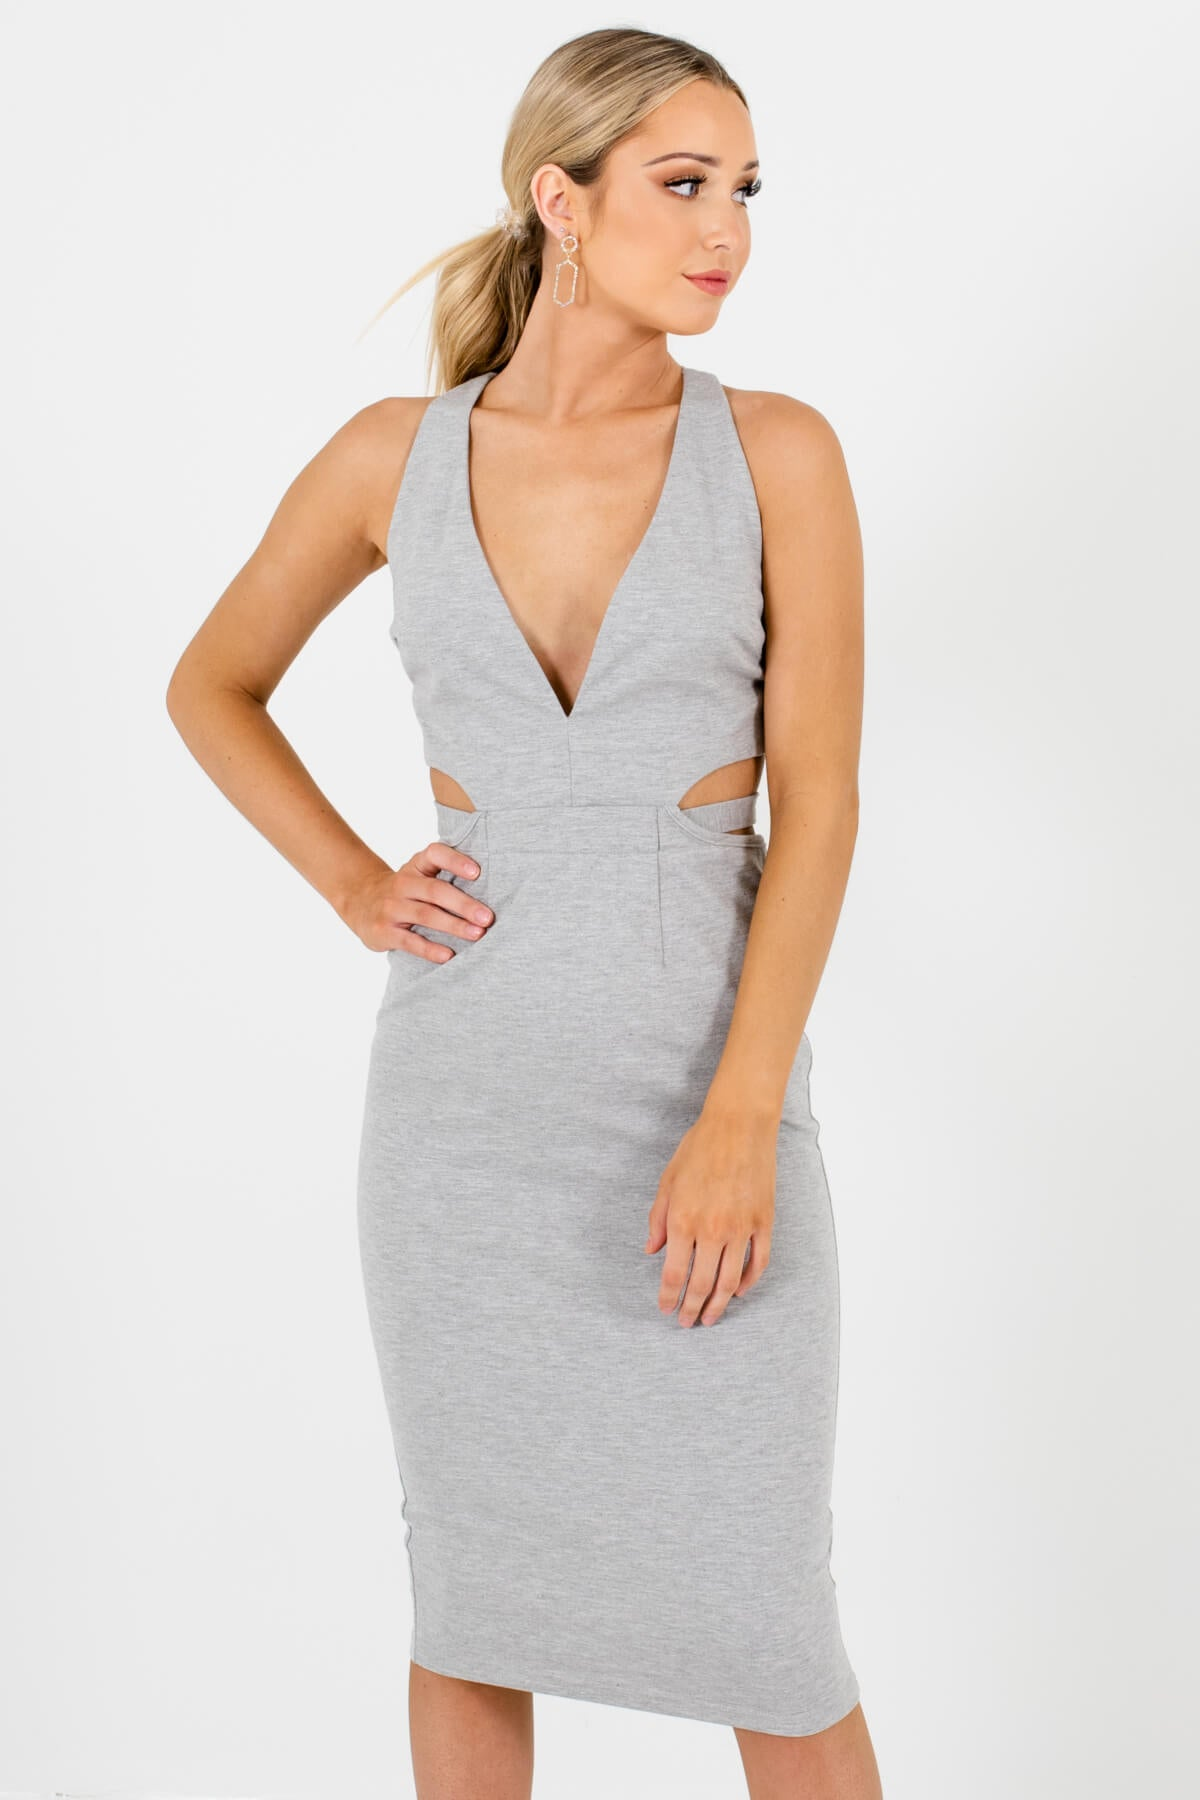 Heather Gray Cutout Detail Boutique Knee-Length Dresses for Women